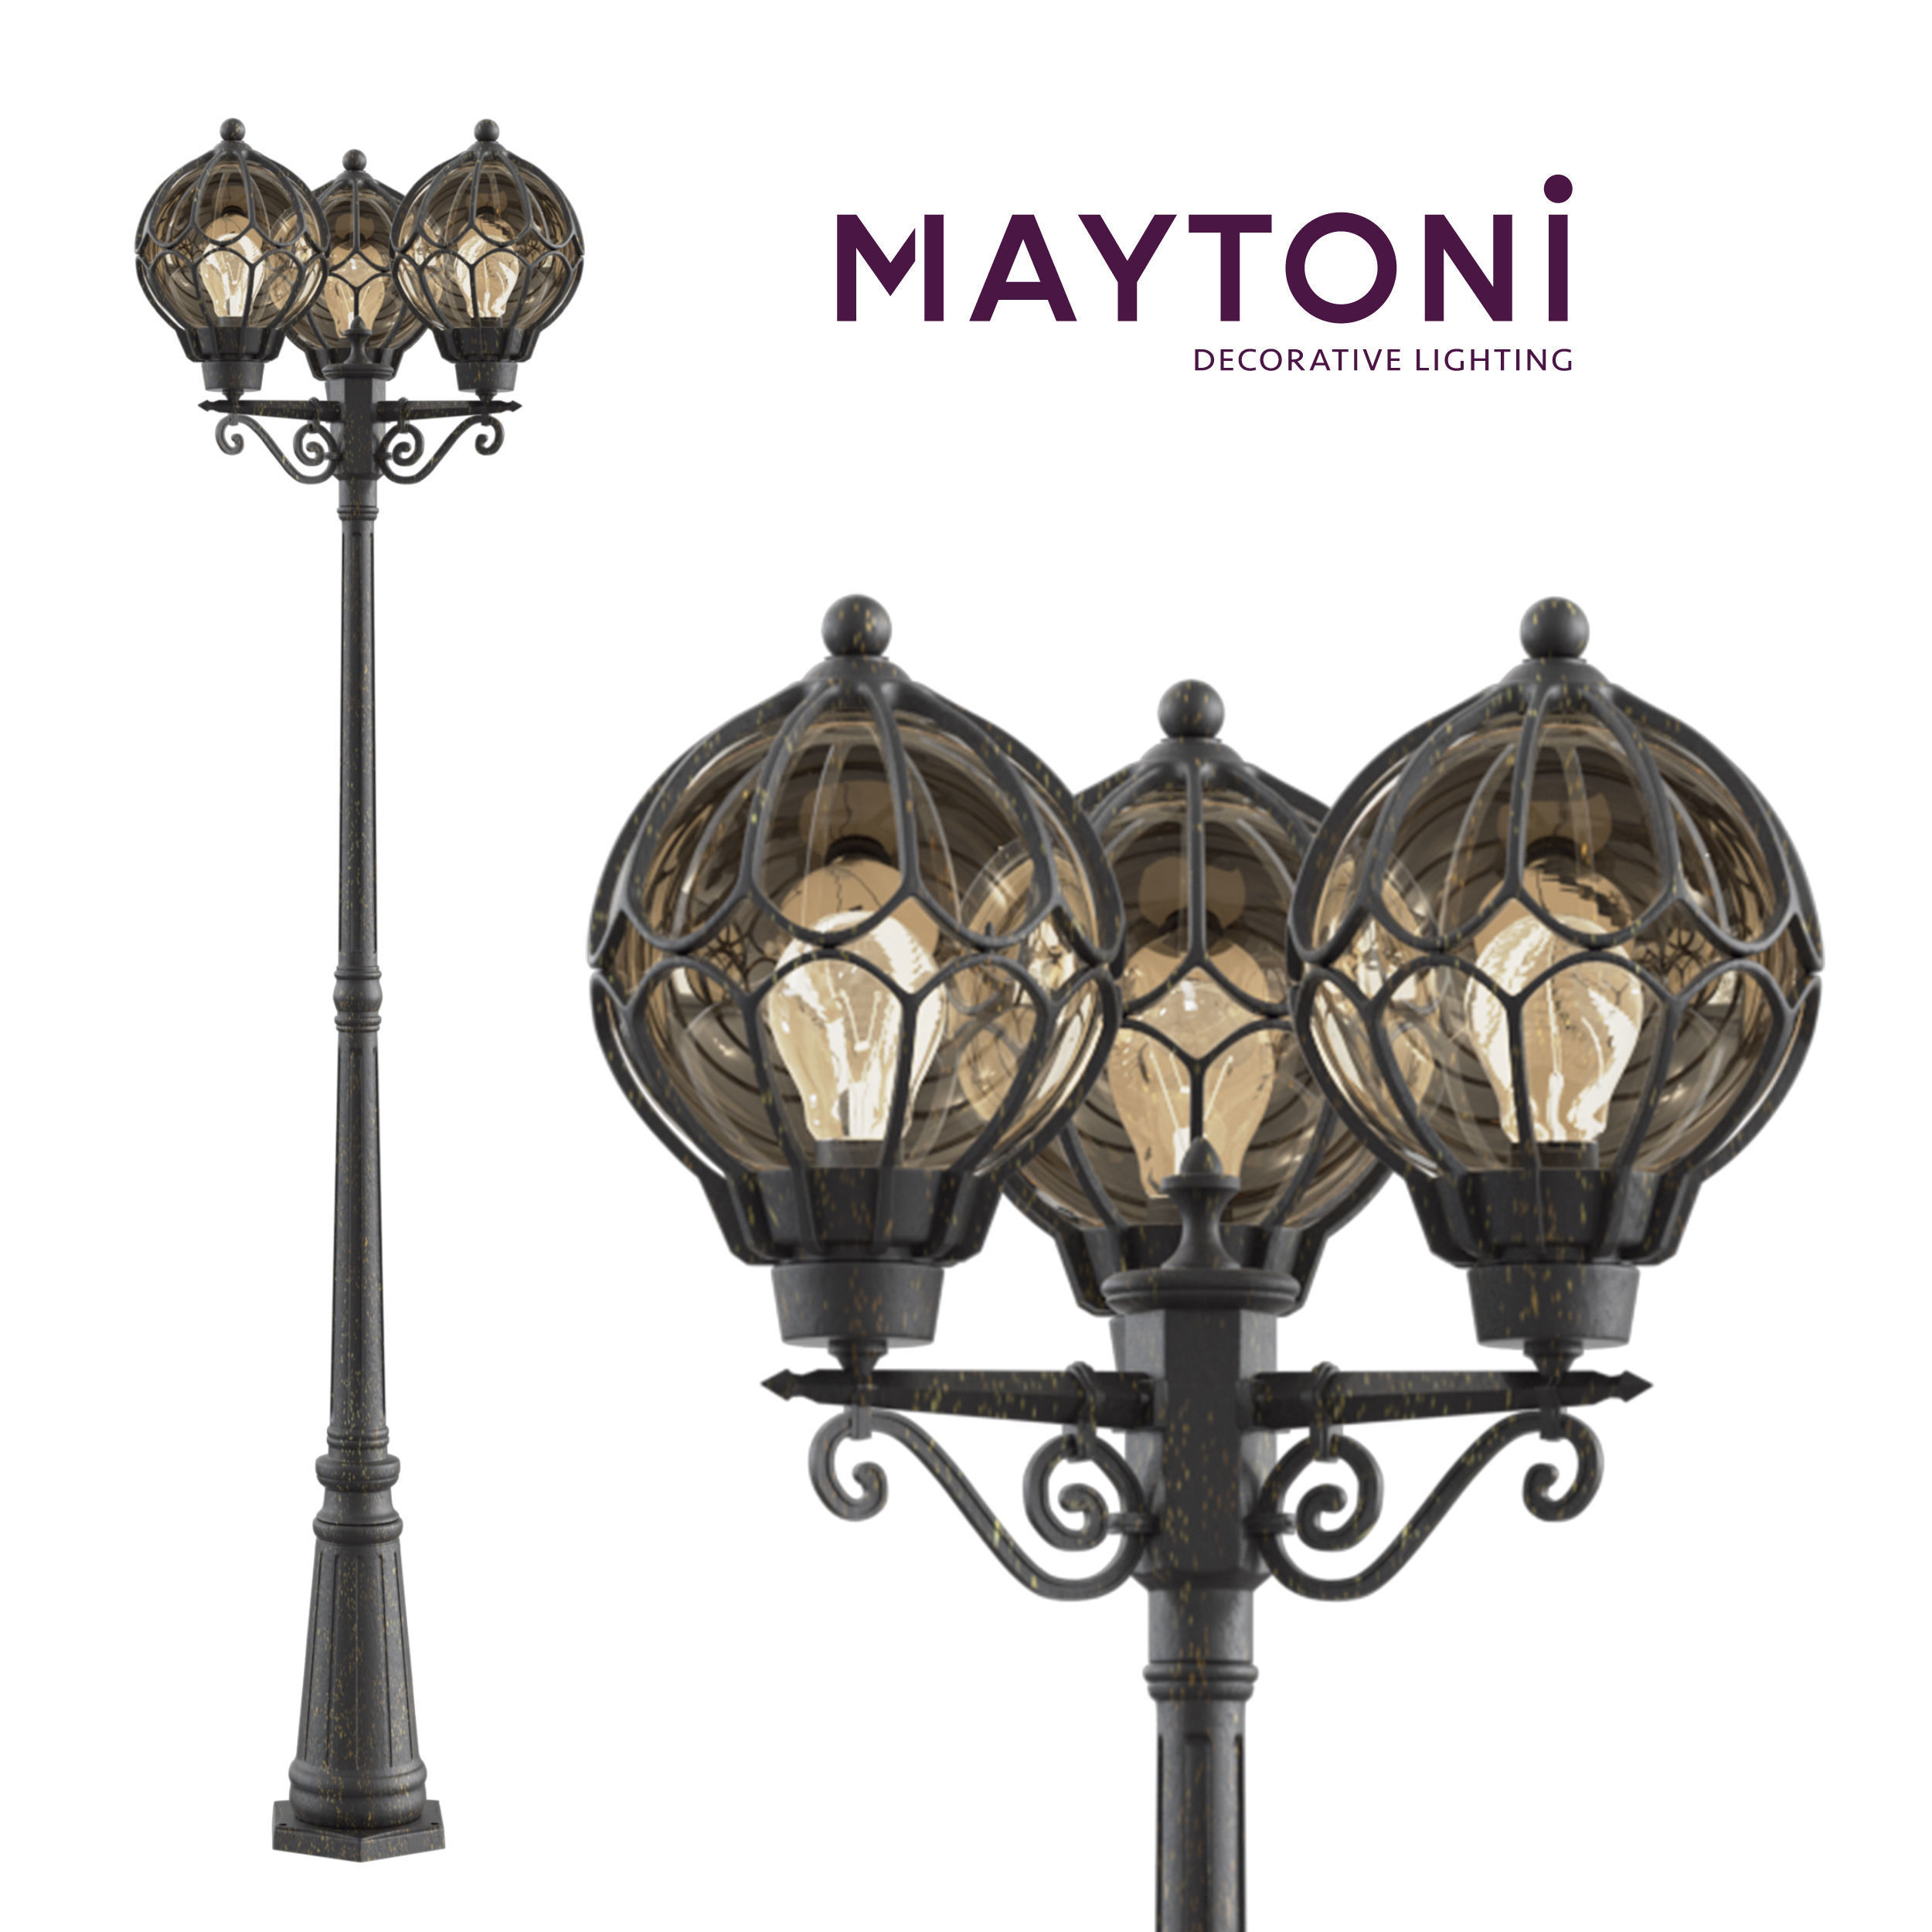 Garden Lamp 3d Model: Wall Lamp Champs Elysees S110-22-03-R Maytoni Outdoor 3D